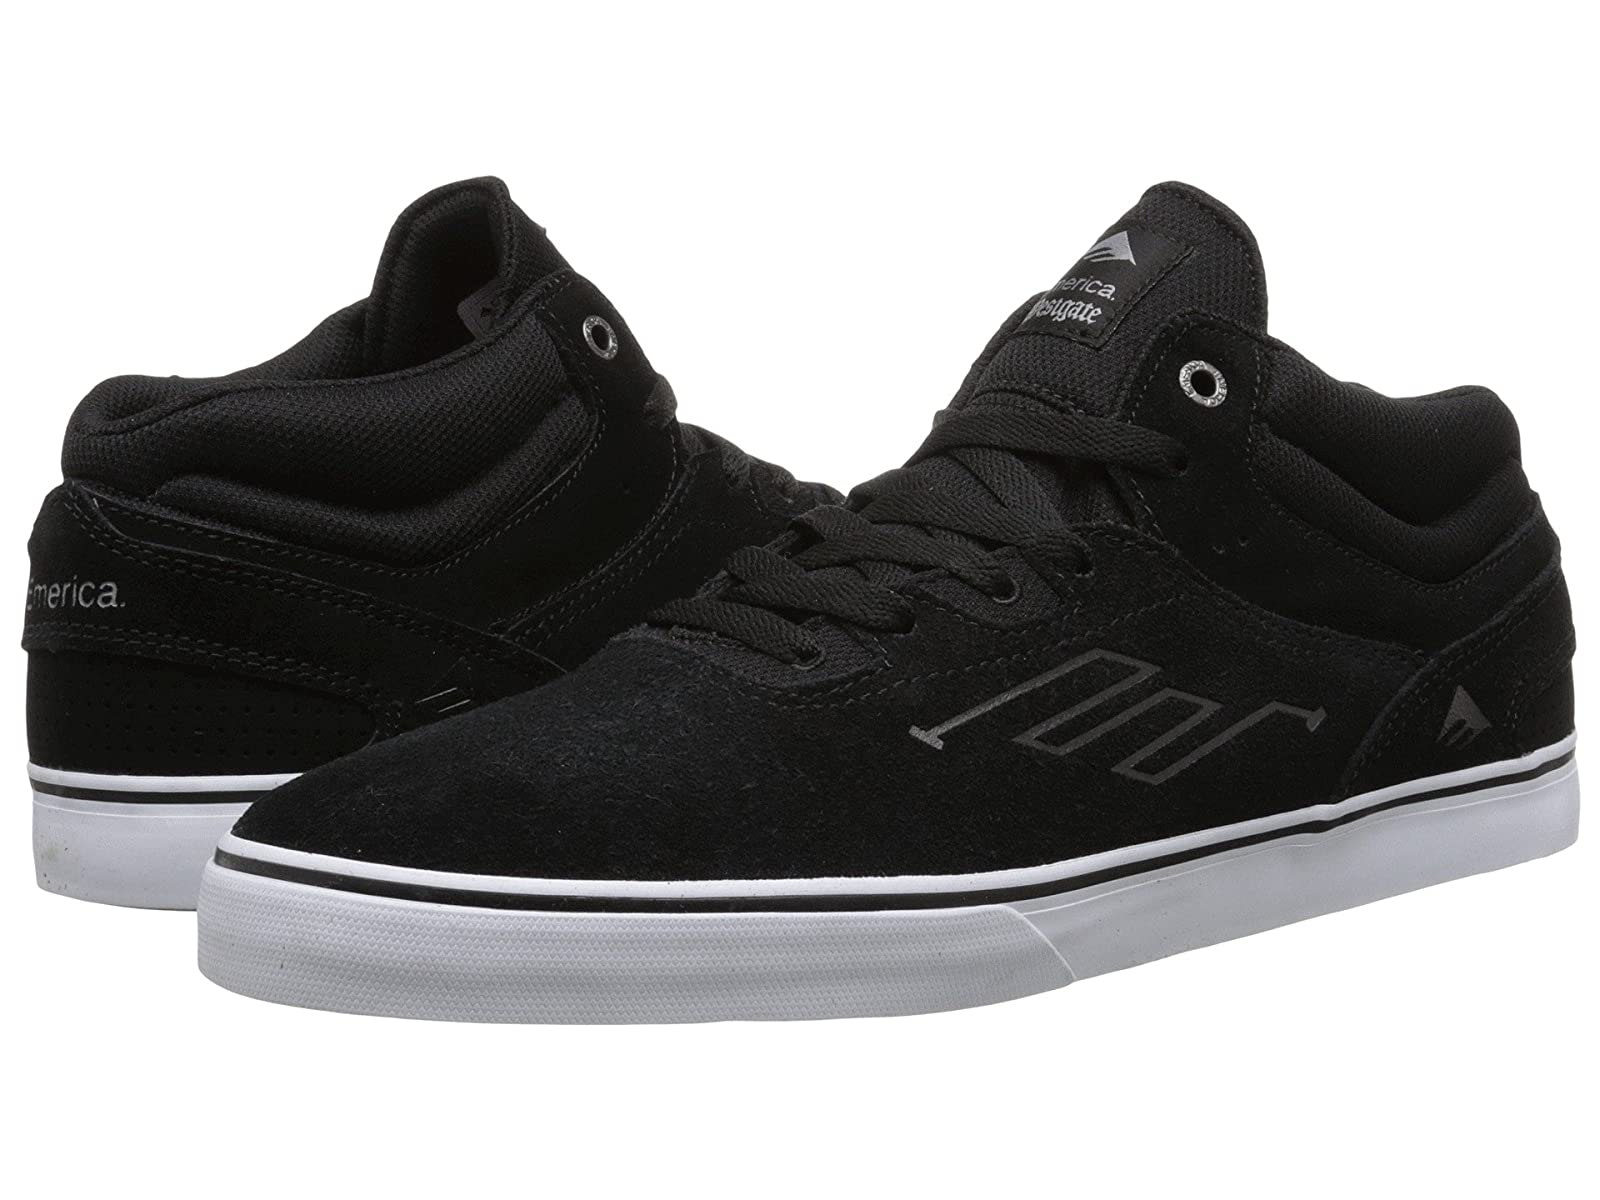 Emerica The Westgate Mid VulcCheap and distinctive eye-catching shoes